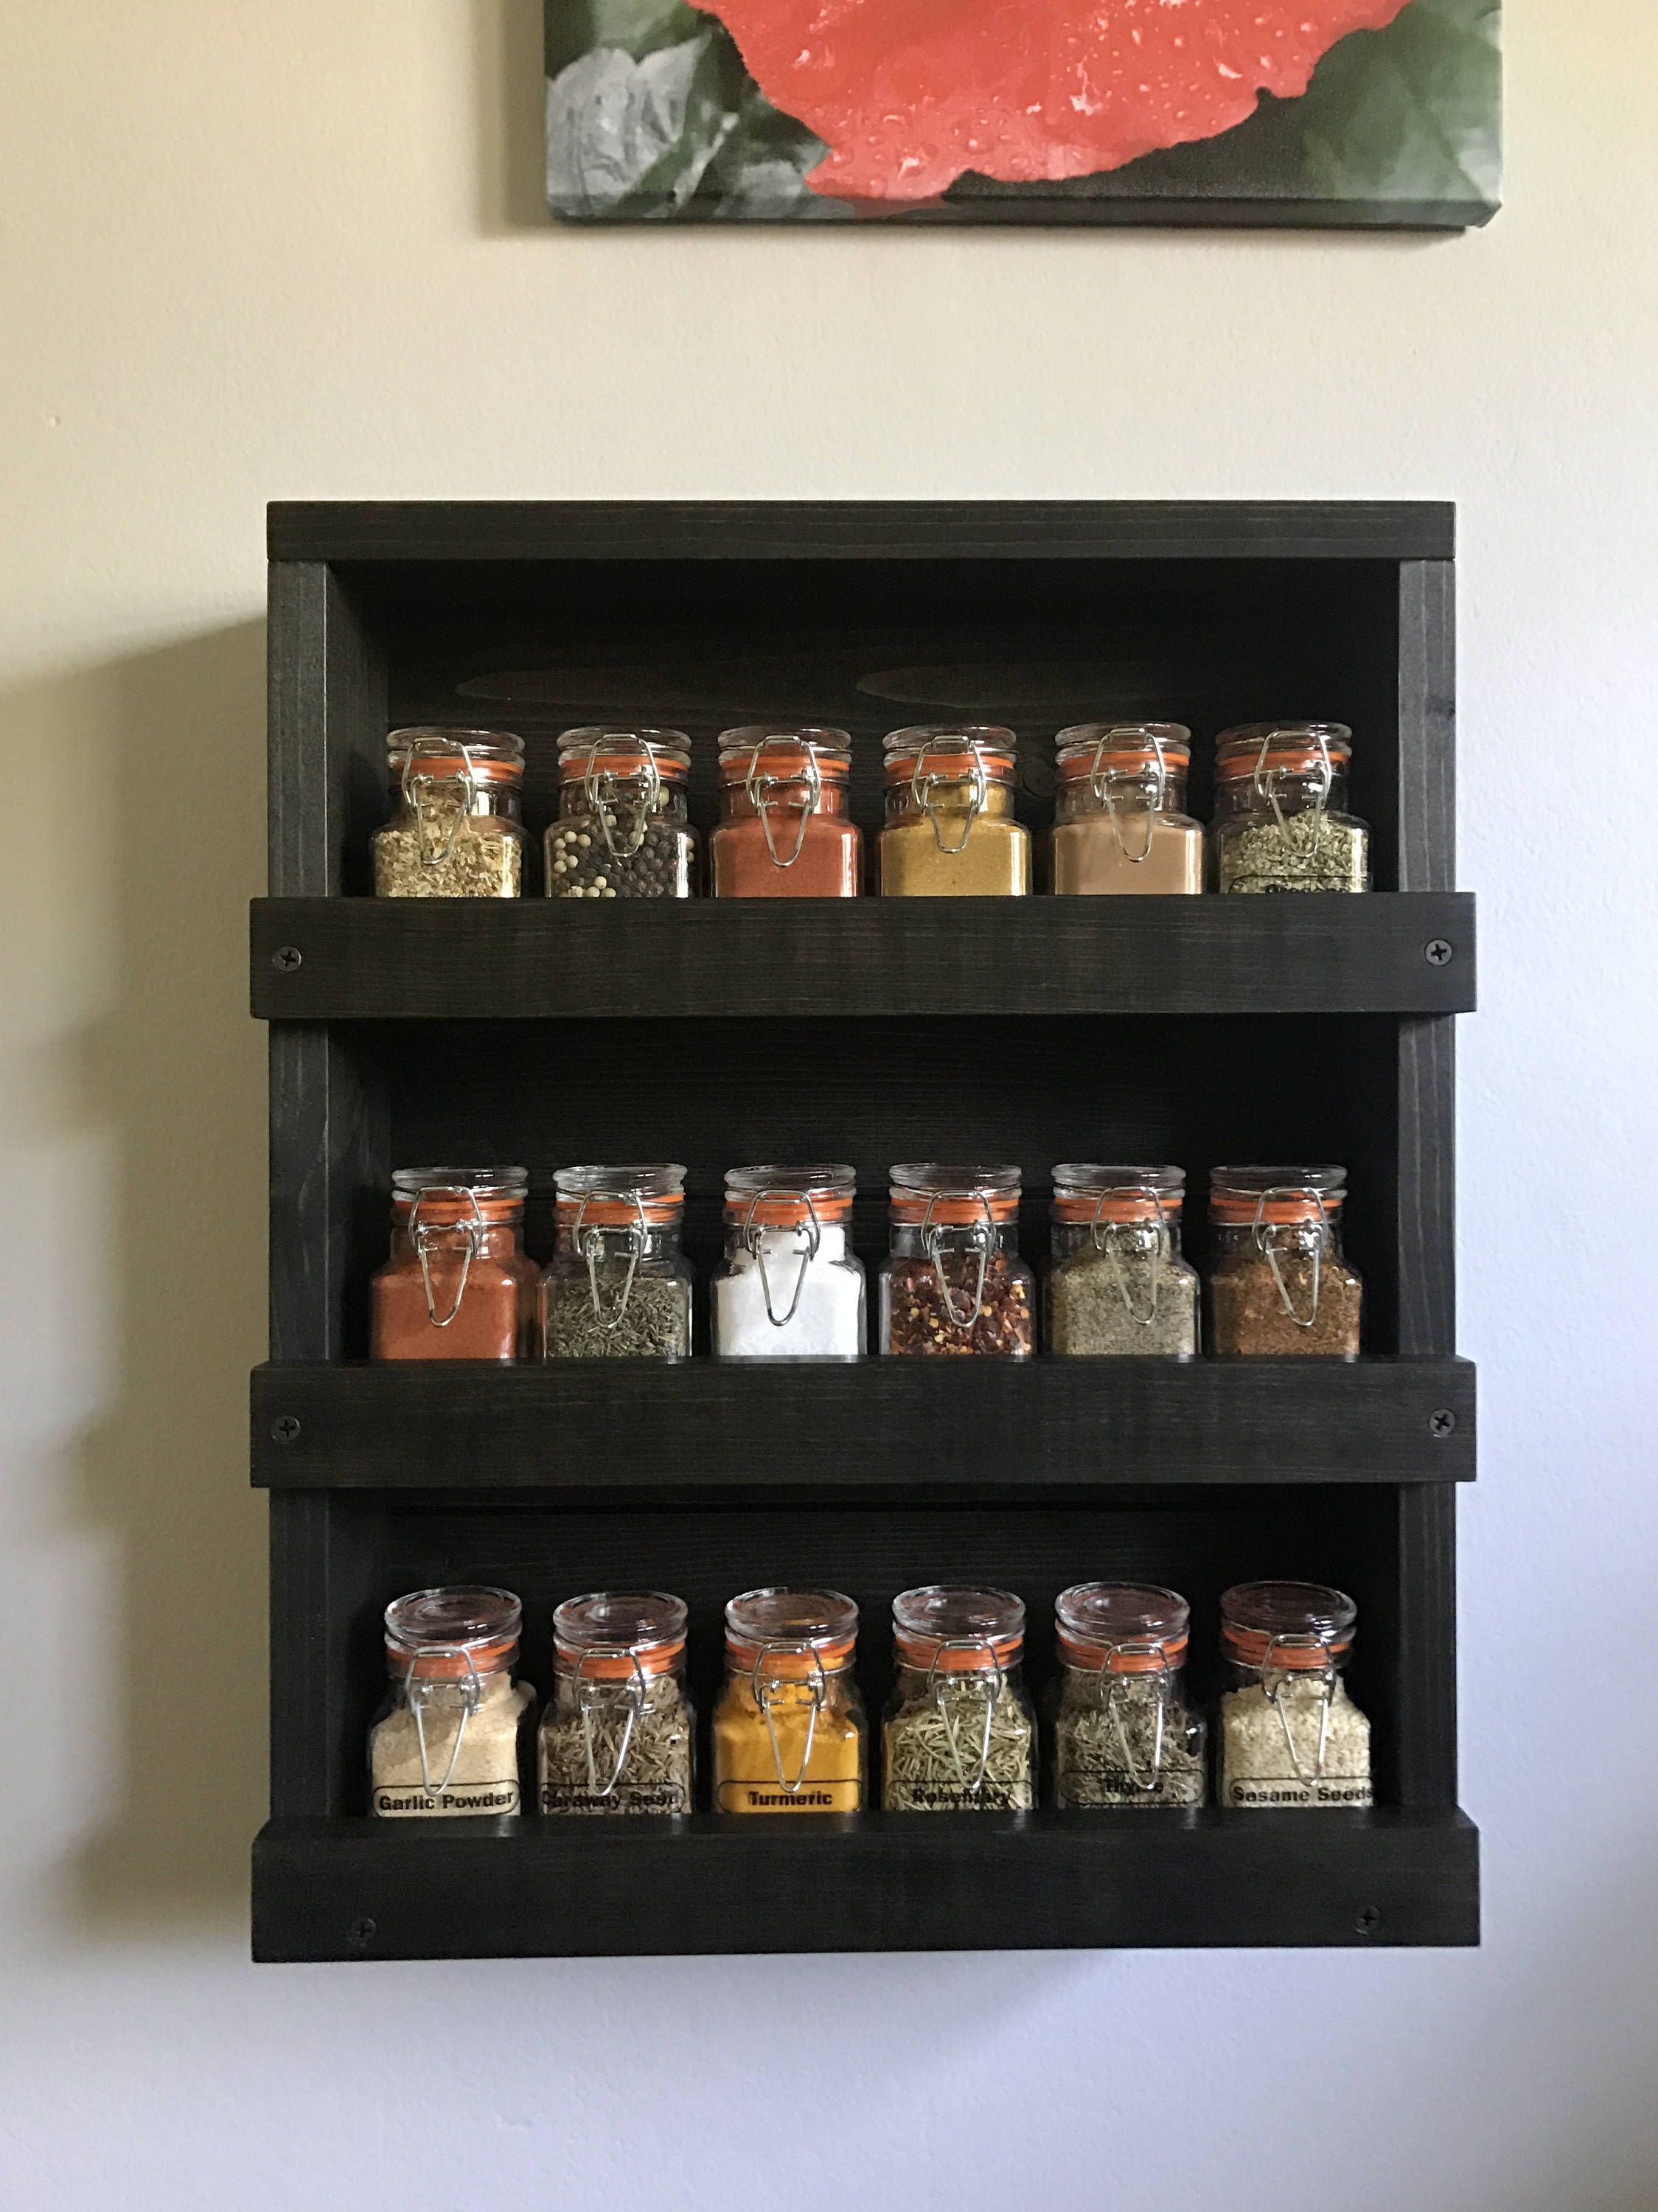 Spice Rack Wall Mounted Spice Shelves Kitchen Spice Organizer Gift For Her Farmhouse Kitchen Storage And Decor Spice Jars Hanging Shelf Modern Kitchen Shelves Wall Mounted Spice Rack Spice Rack Rustic